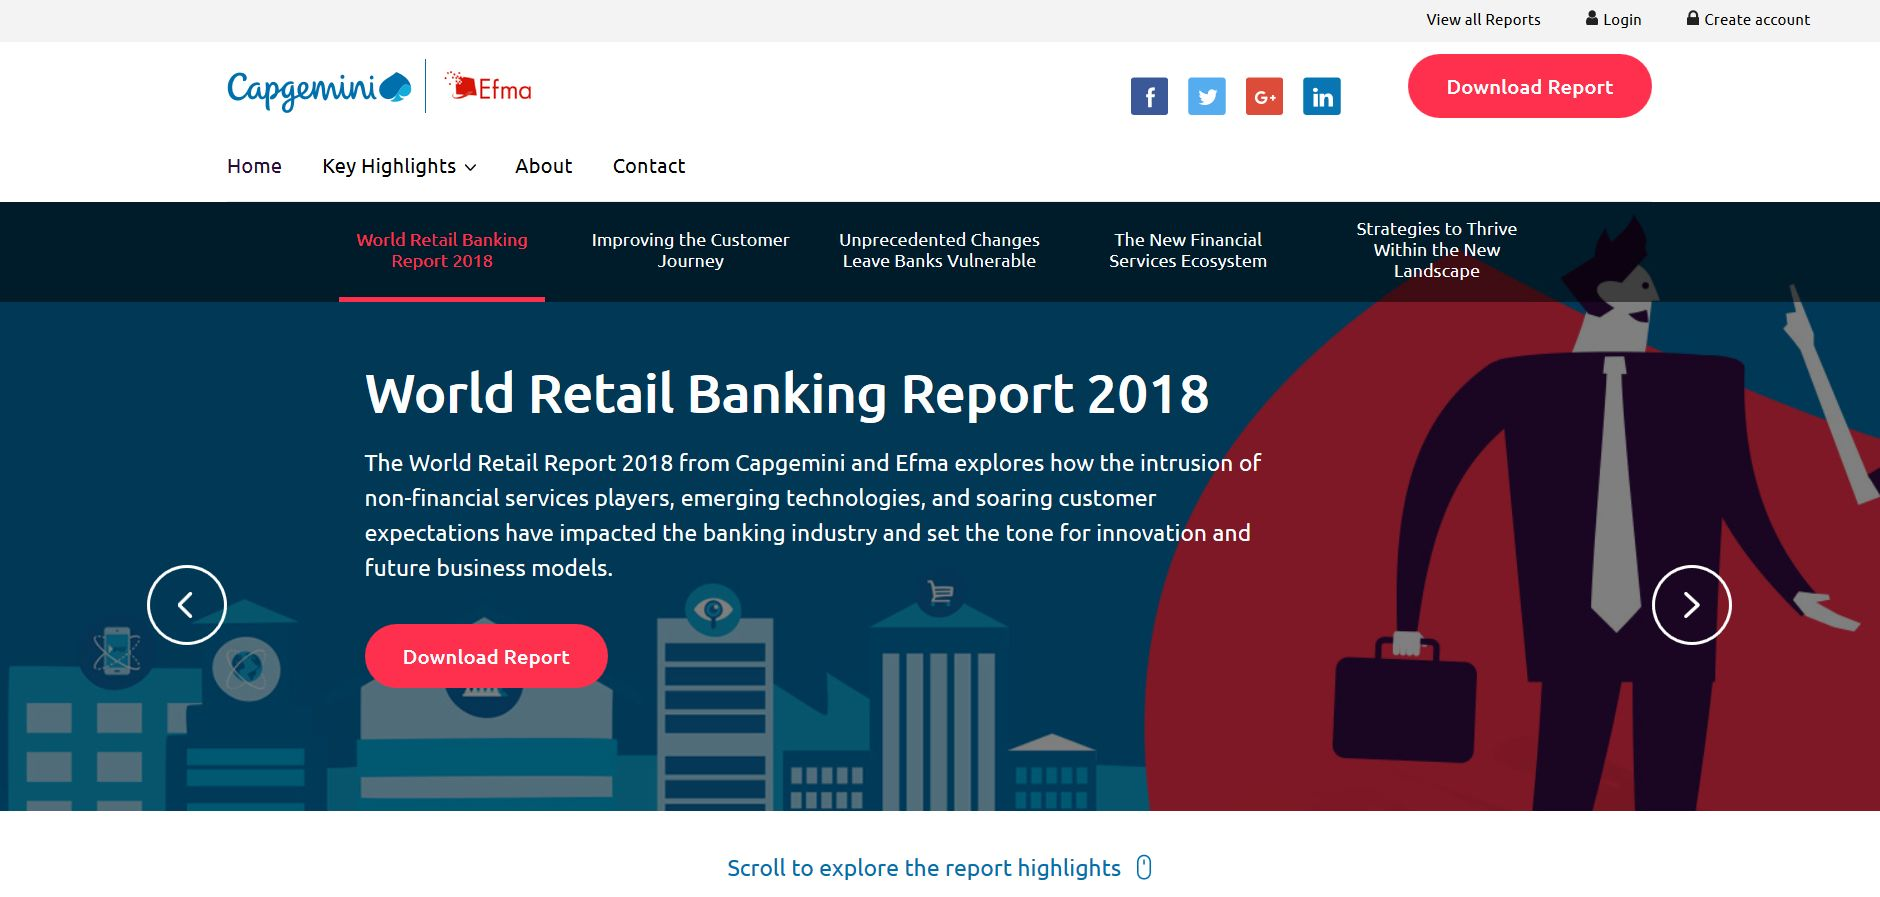 World Retail Banking Report